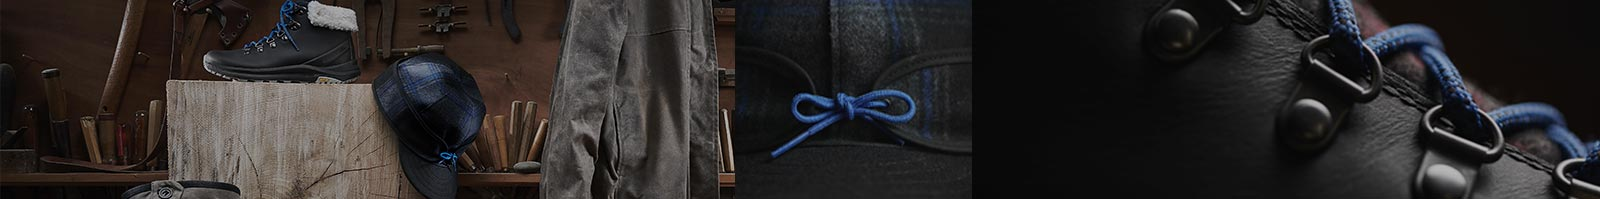 Merrell Merrell X Stormy Kromer collection of blue and black jackets, boots and hat.